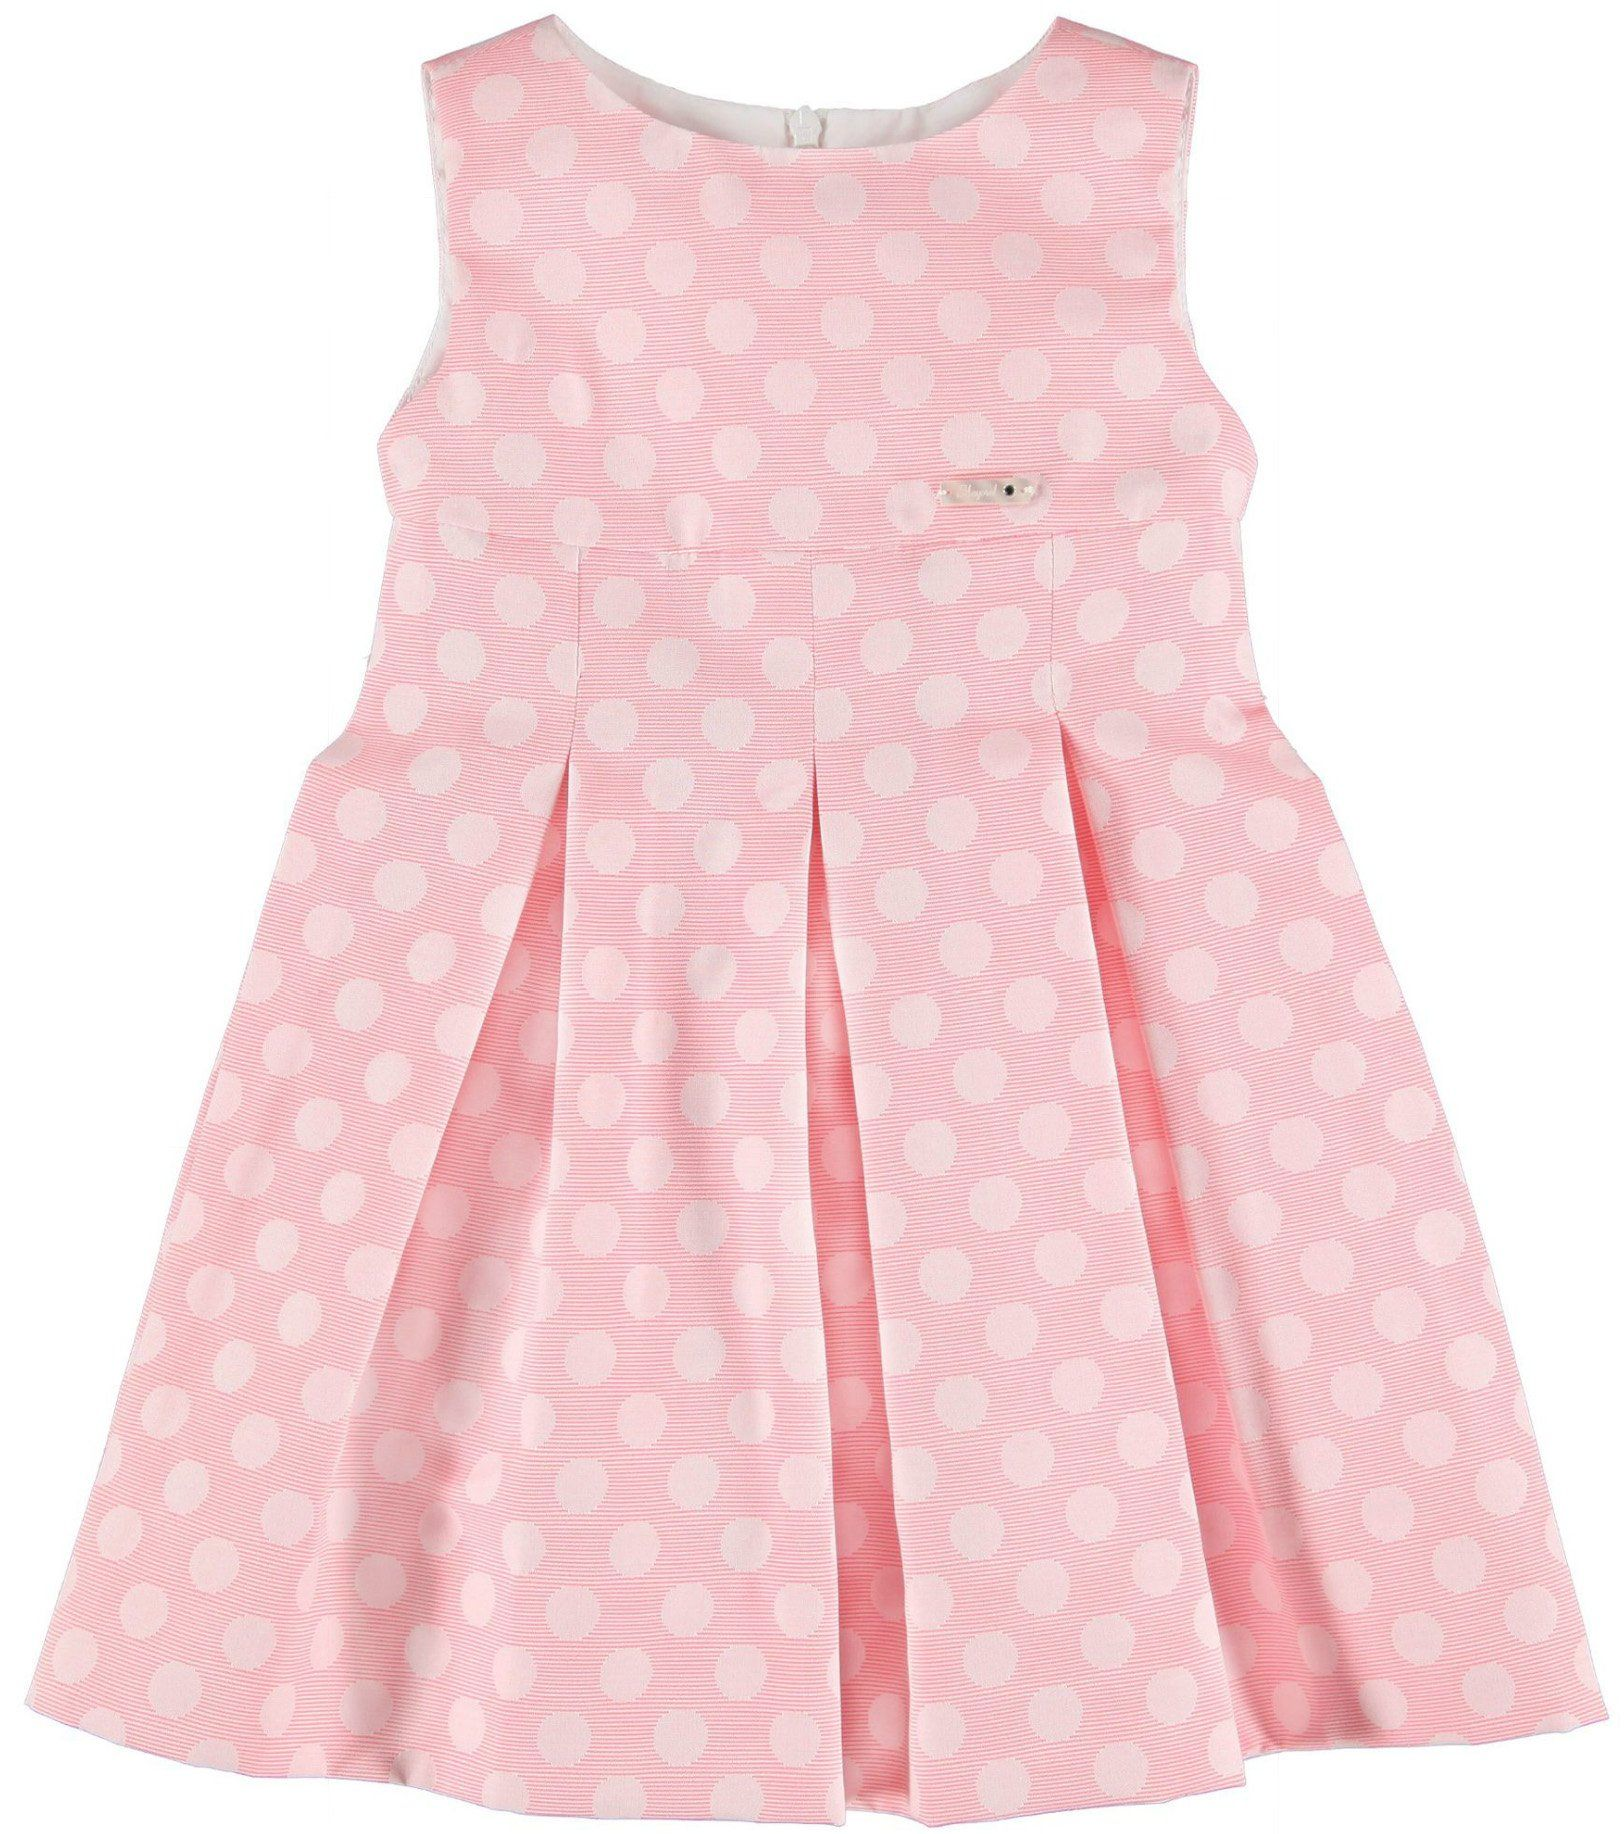 e7b63d446 Sale Spring Summer Mayoral Girls Pink Polka Dots Dress | Cachet Kids ...